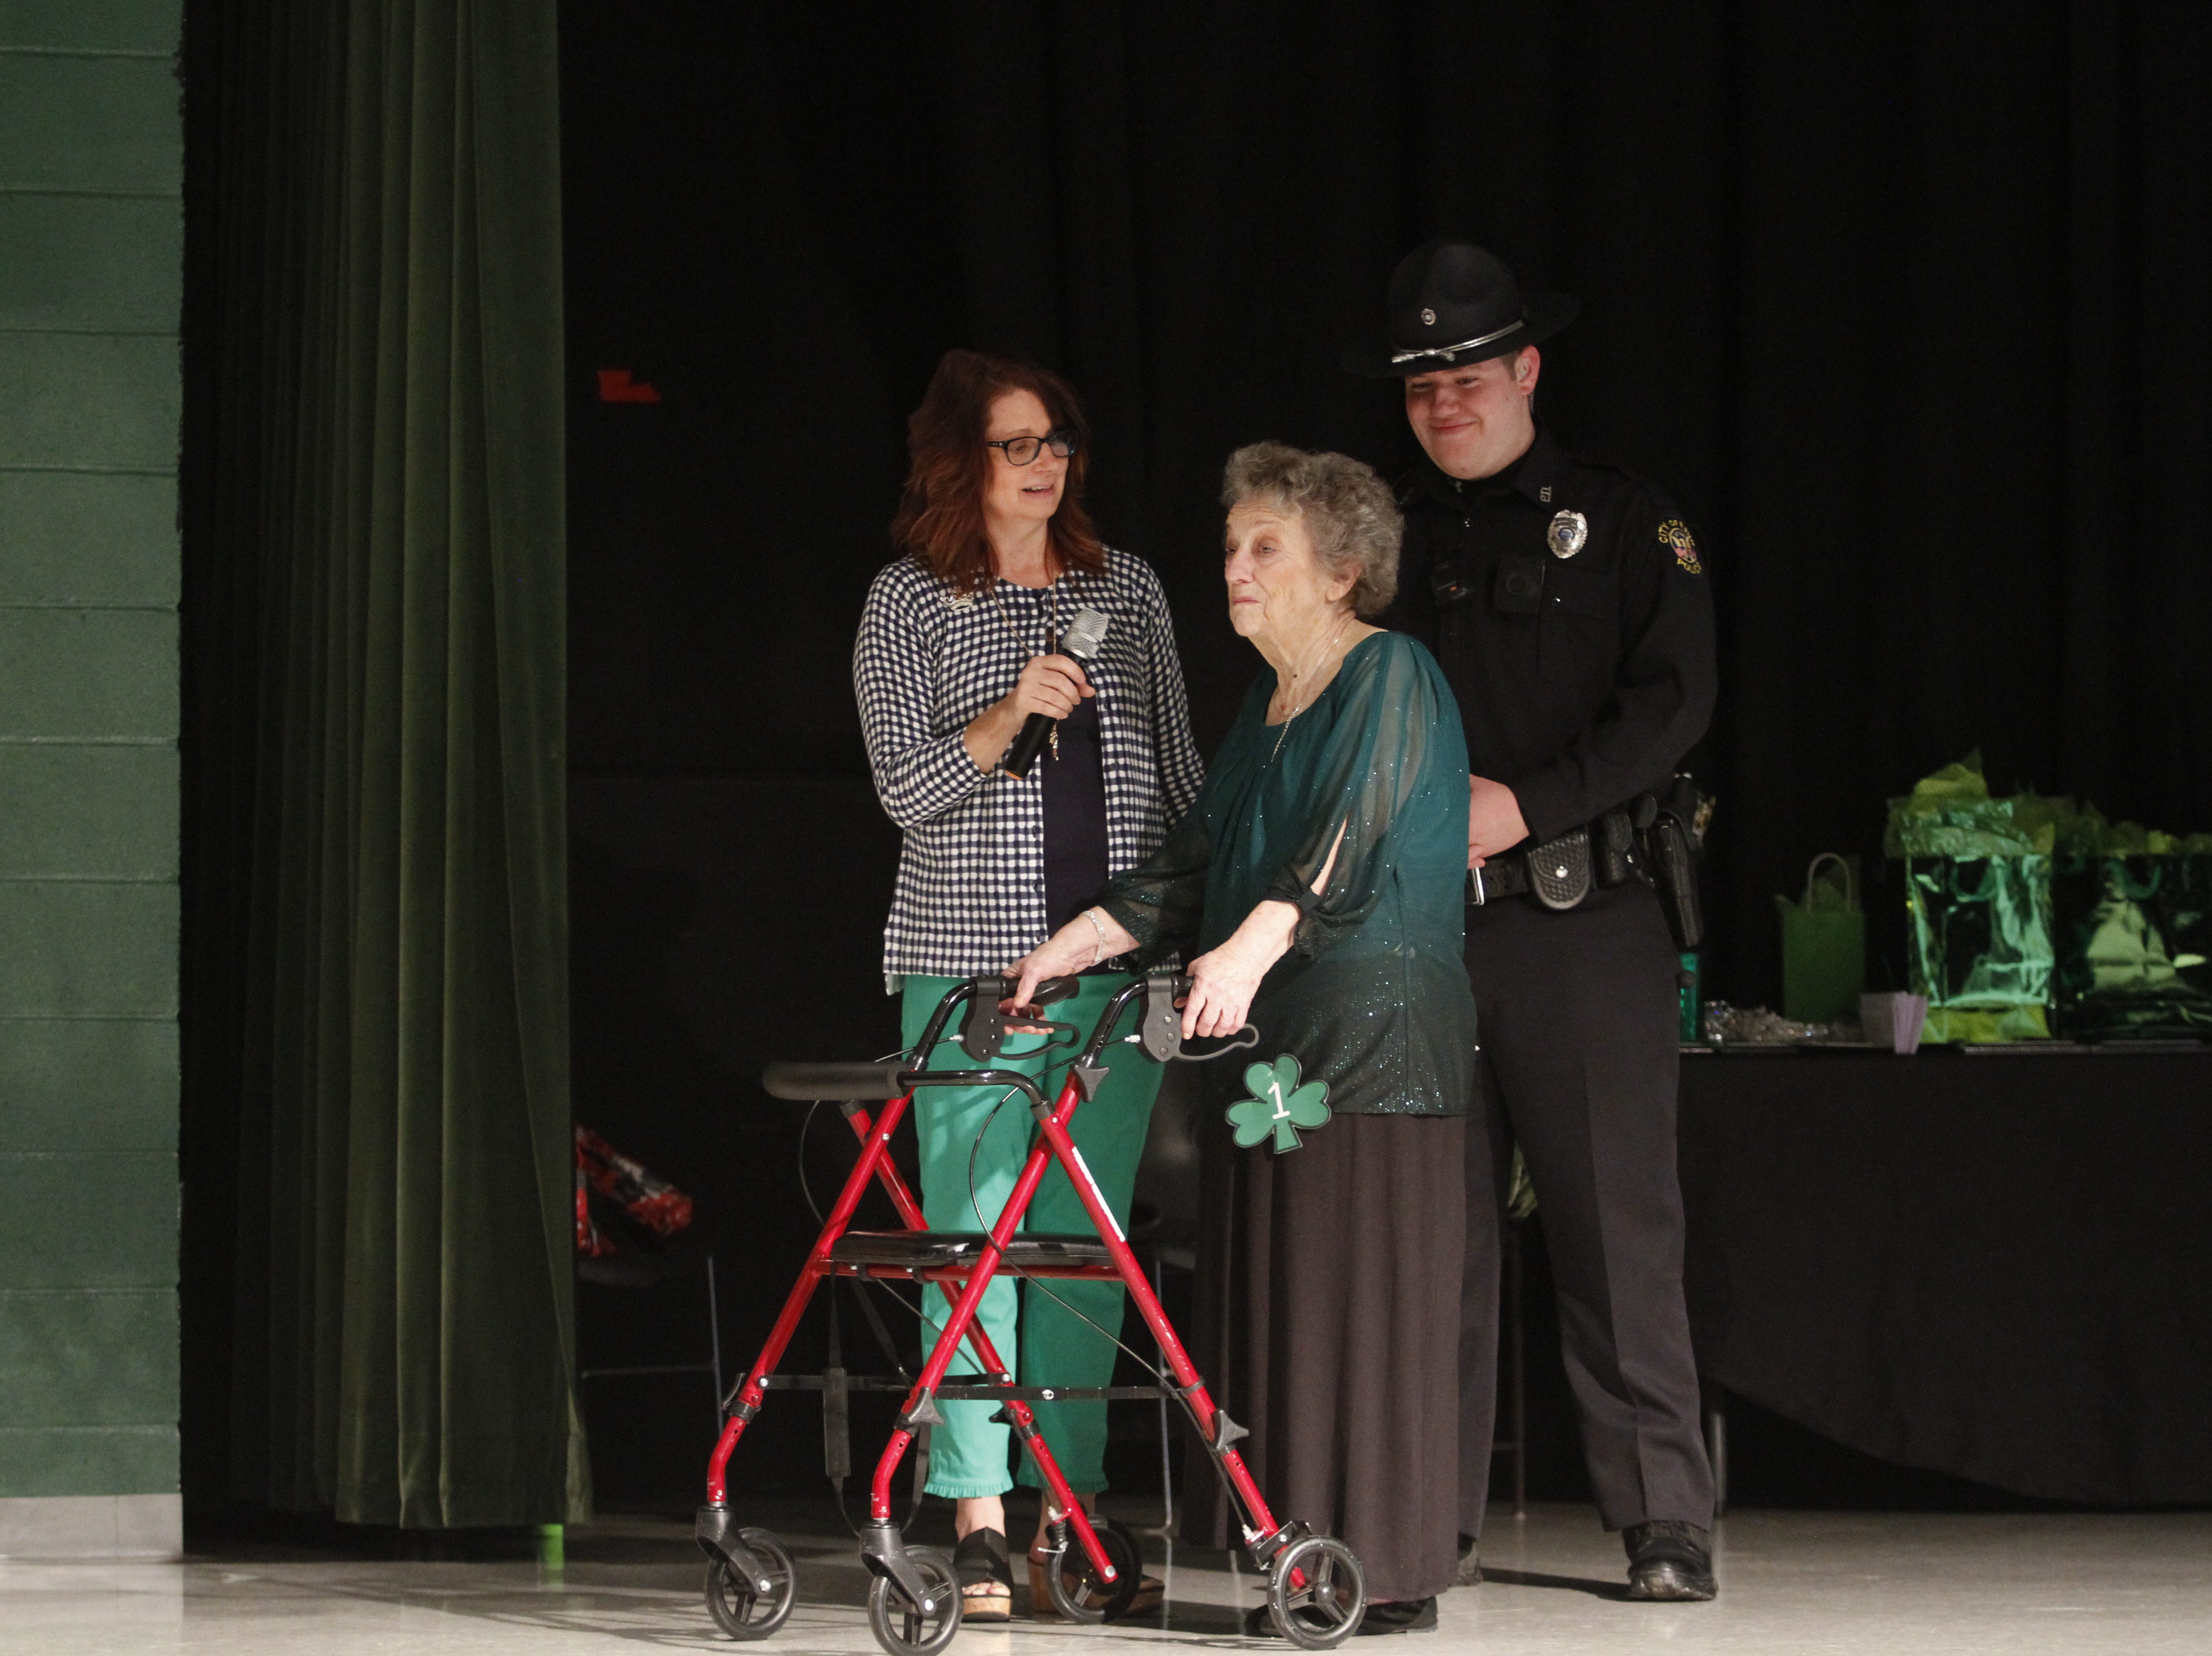 Lisa Moore asks questions of Eula Stanfill at the 2019 Emerald Queen Pageant on Saturday, March 9, 2019.